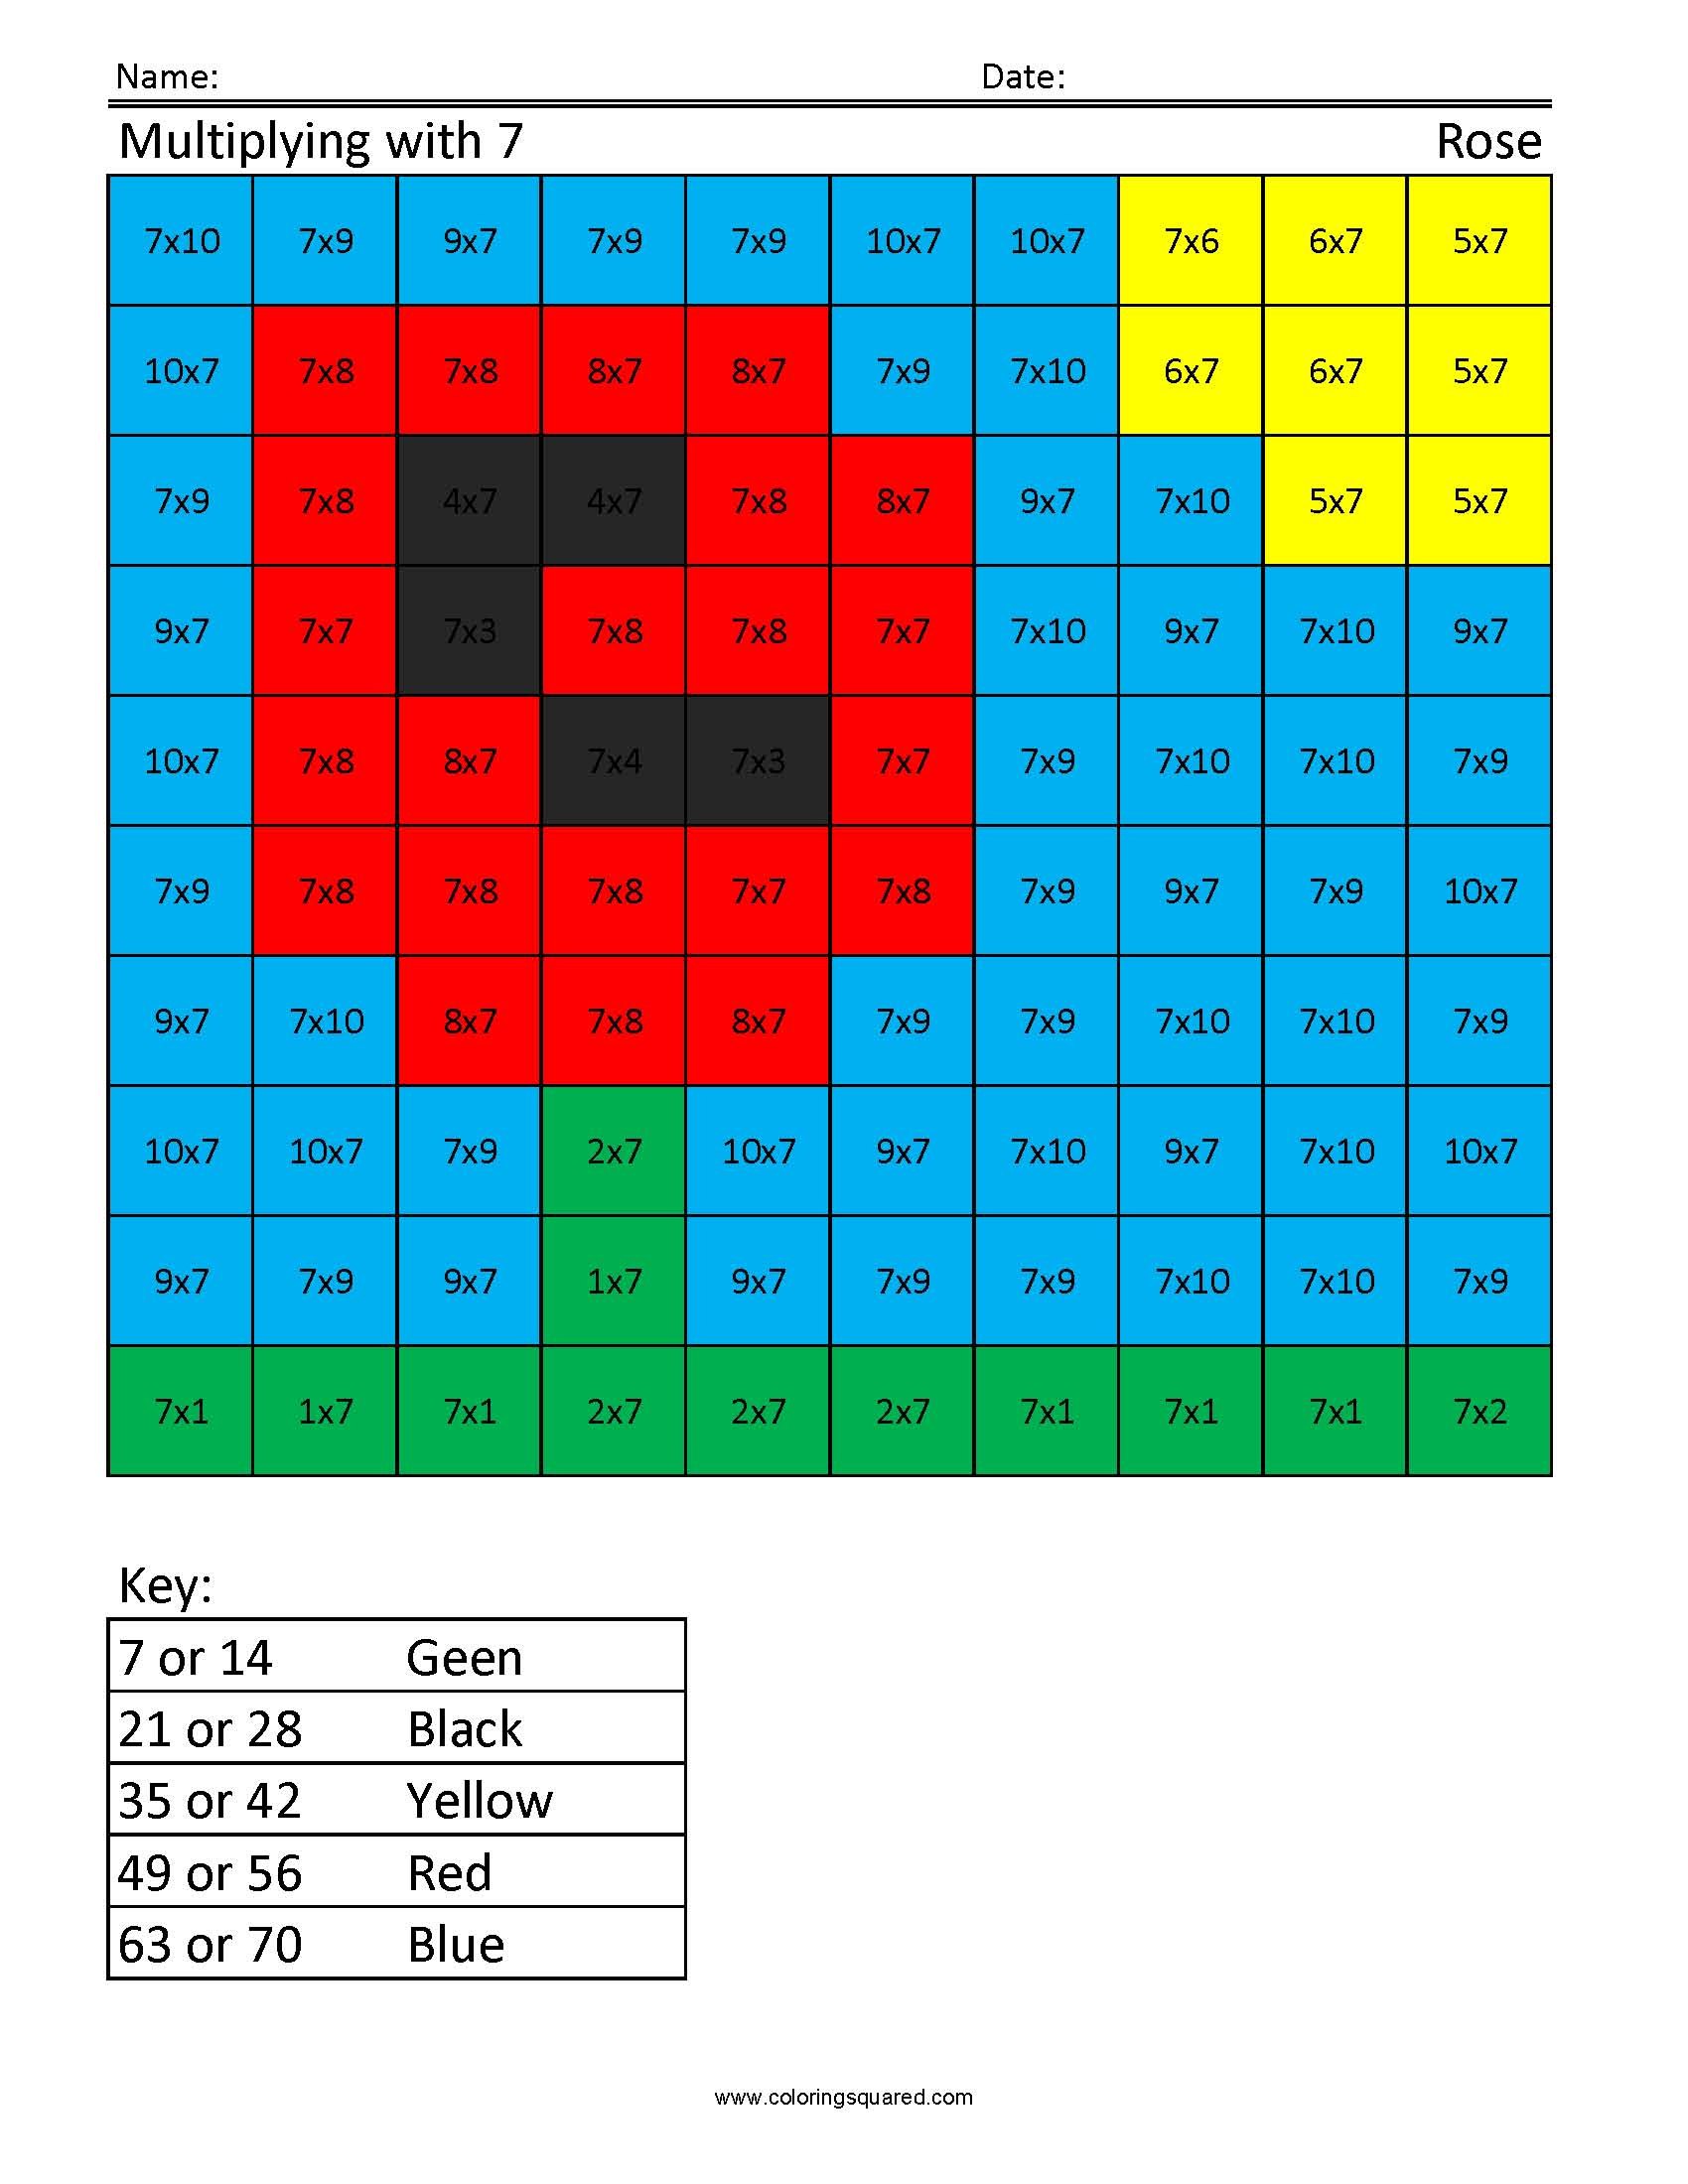 JM7 Rose free multiplication times table practice - Coloring Squared